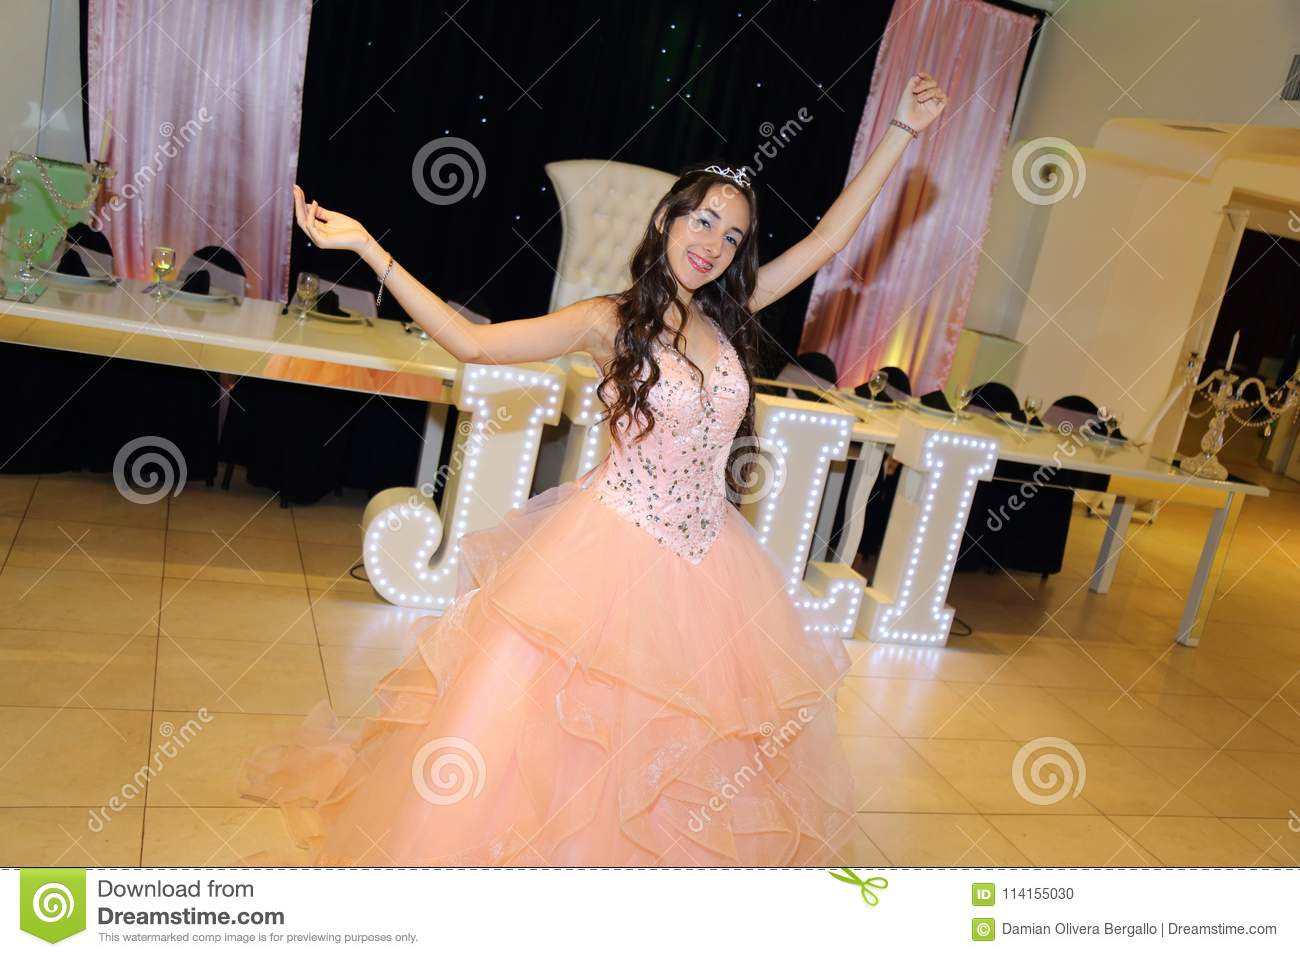 Pretty teen quinceanera birthday girl celebrating in princess dress pink party, special celebration of girl becoming woman.